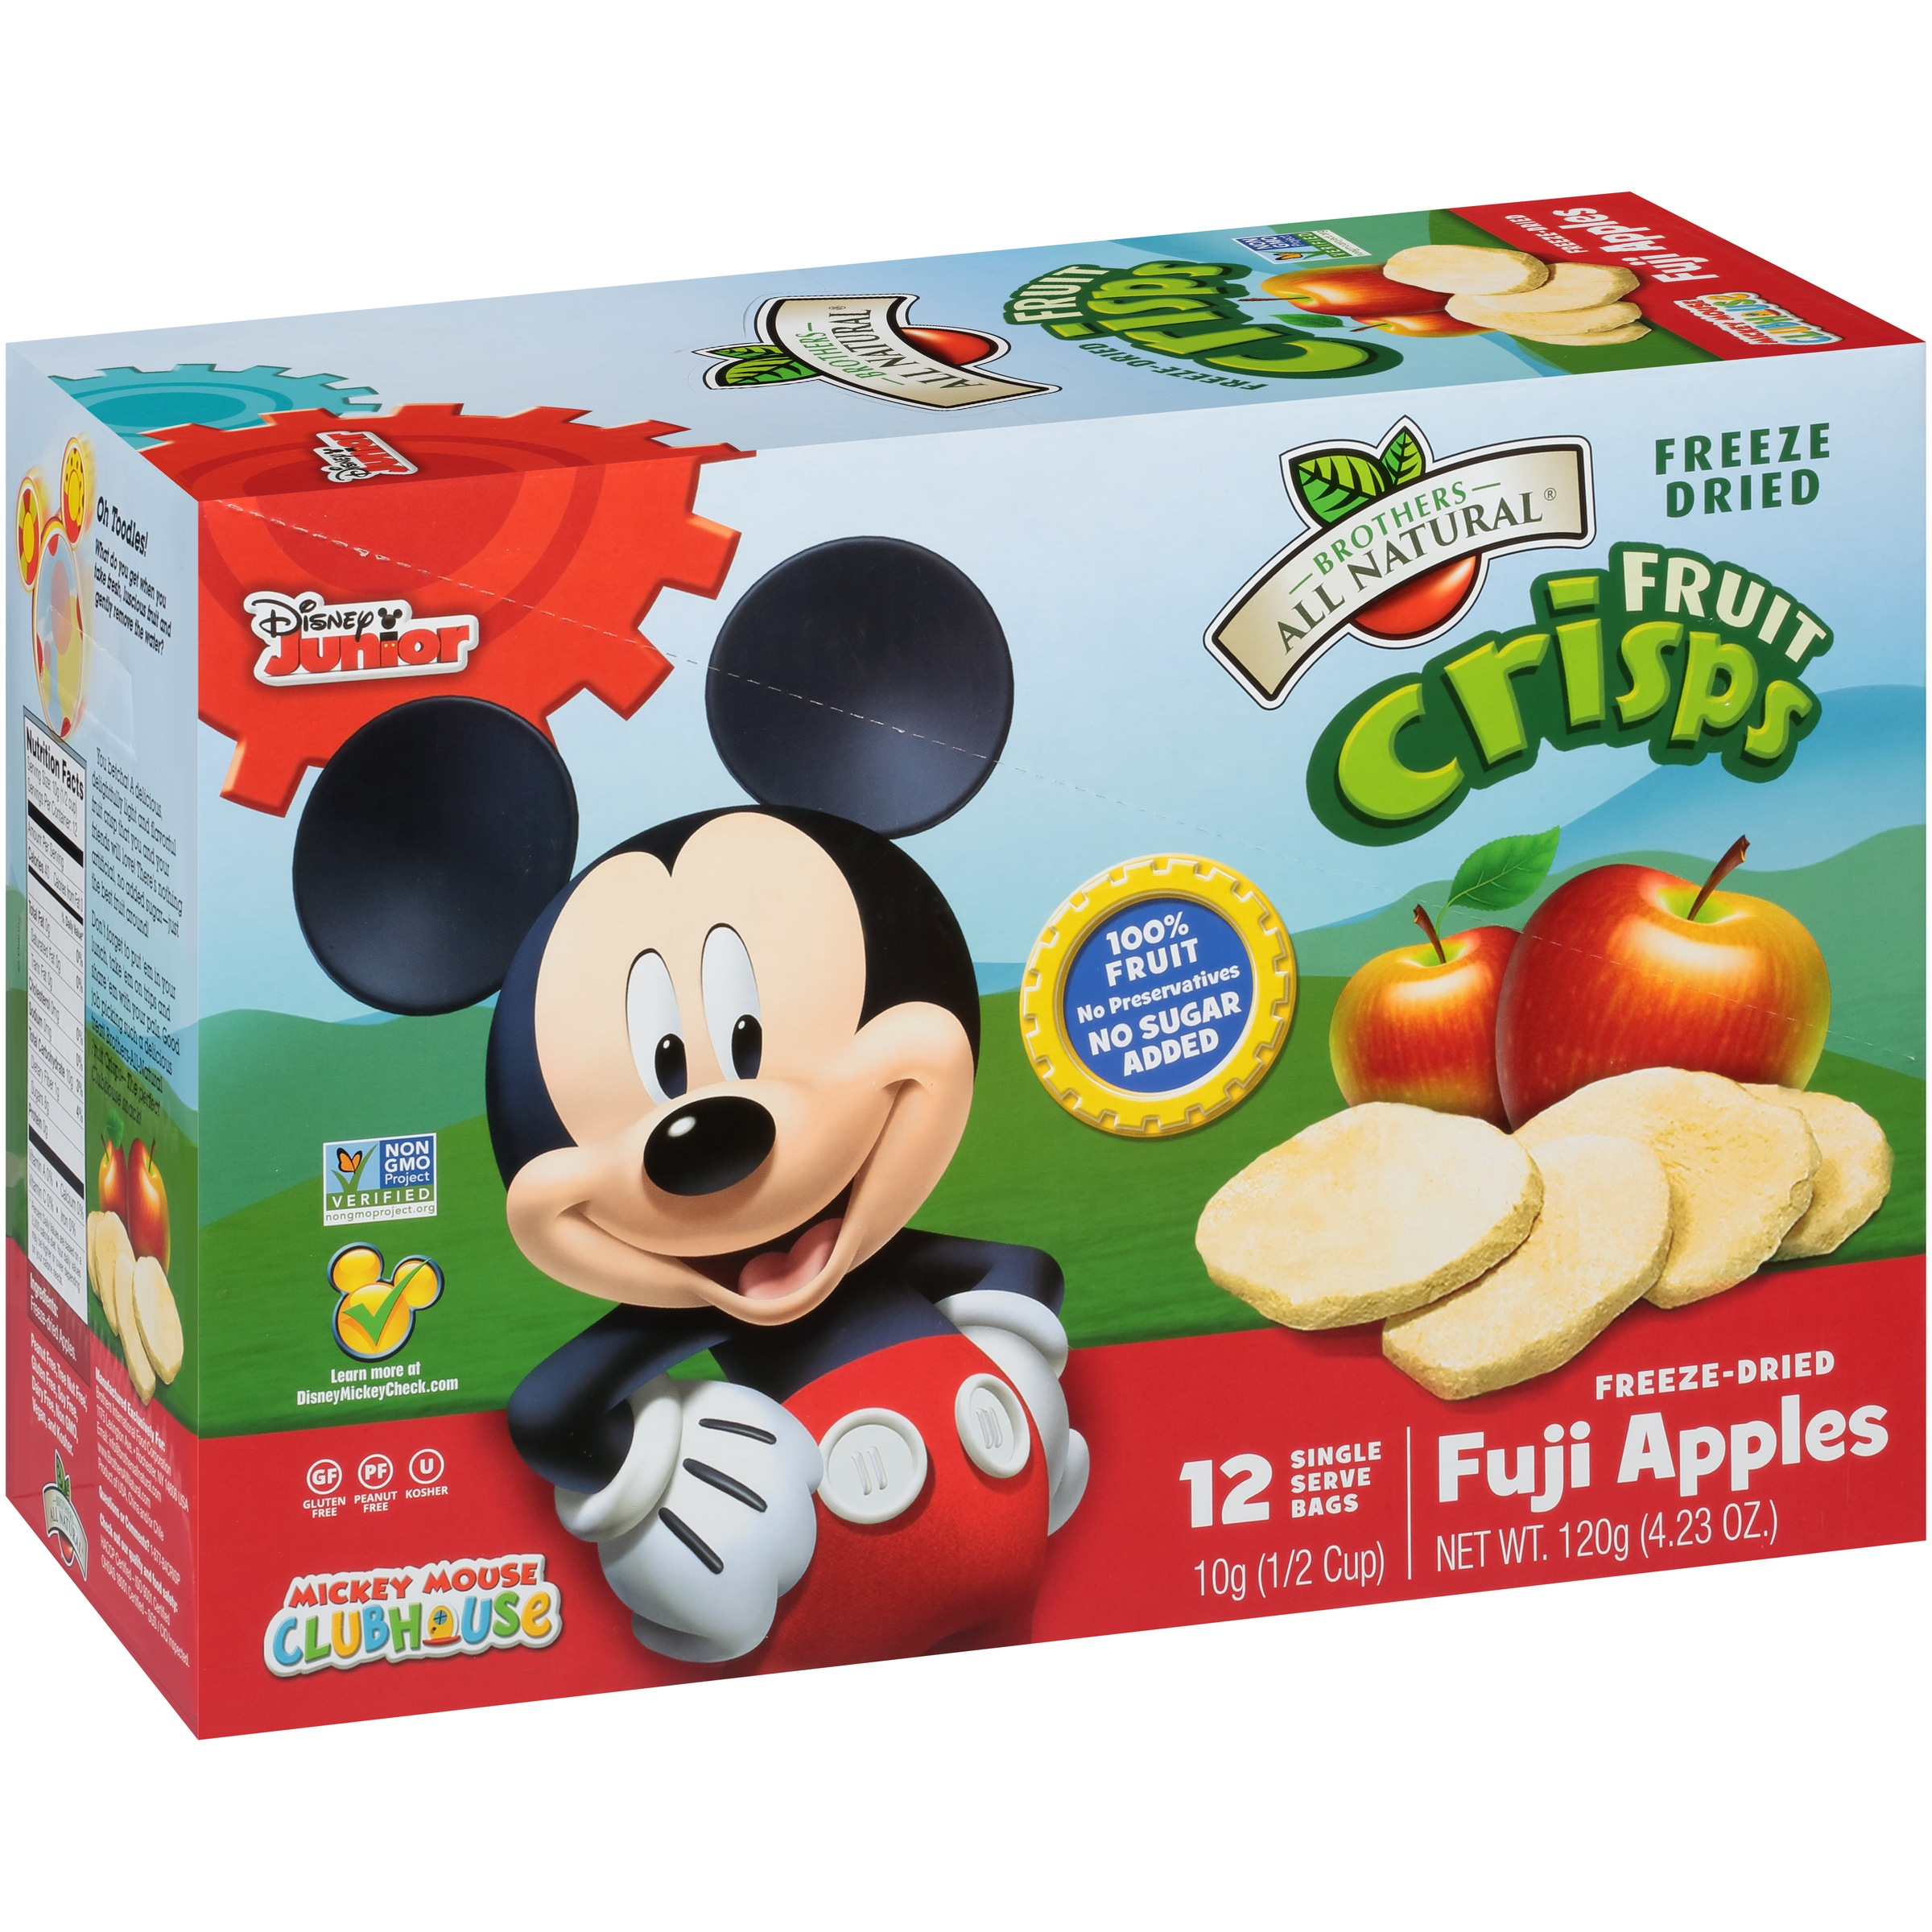 Brothers All Natural Mickey Mouse Freeze-Dried Fruit Crisps, Fuji Apples, 4.23 Oz, 12 Ct by Brothers International Food Corp.